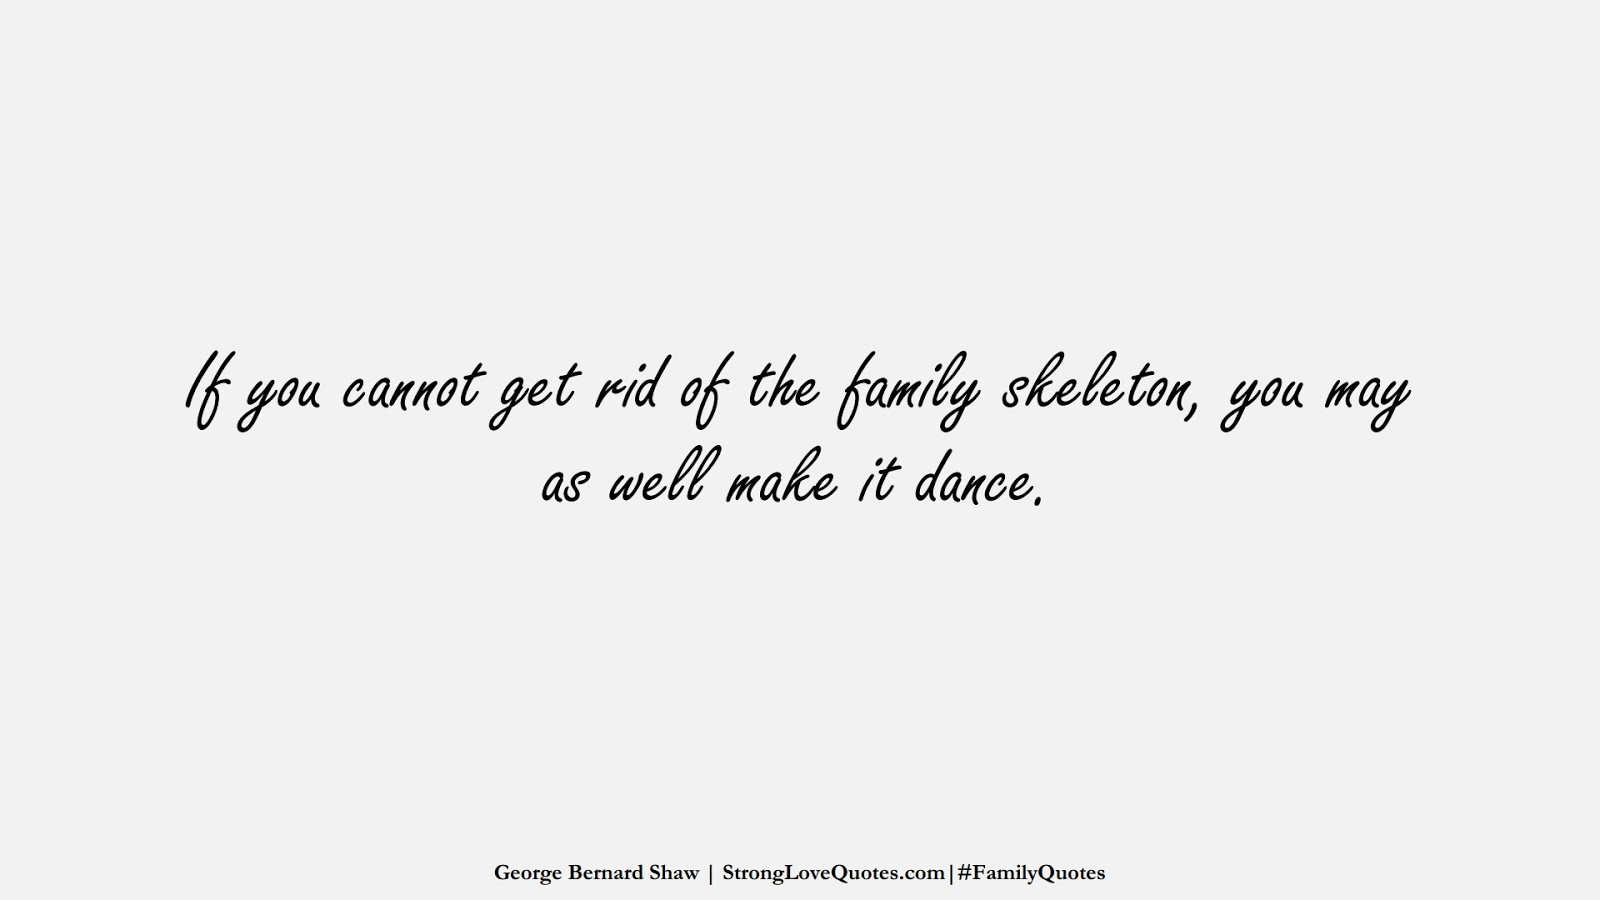 If you cannot get rid of the family skeleton, you may as well make it dance. (George Bernard Shaw);  #FamilyQuotes